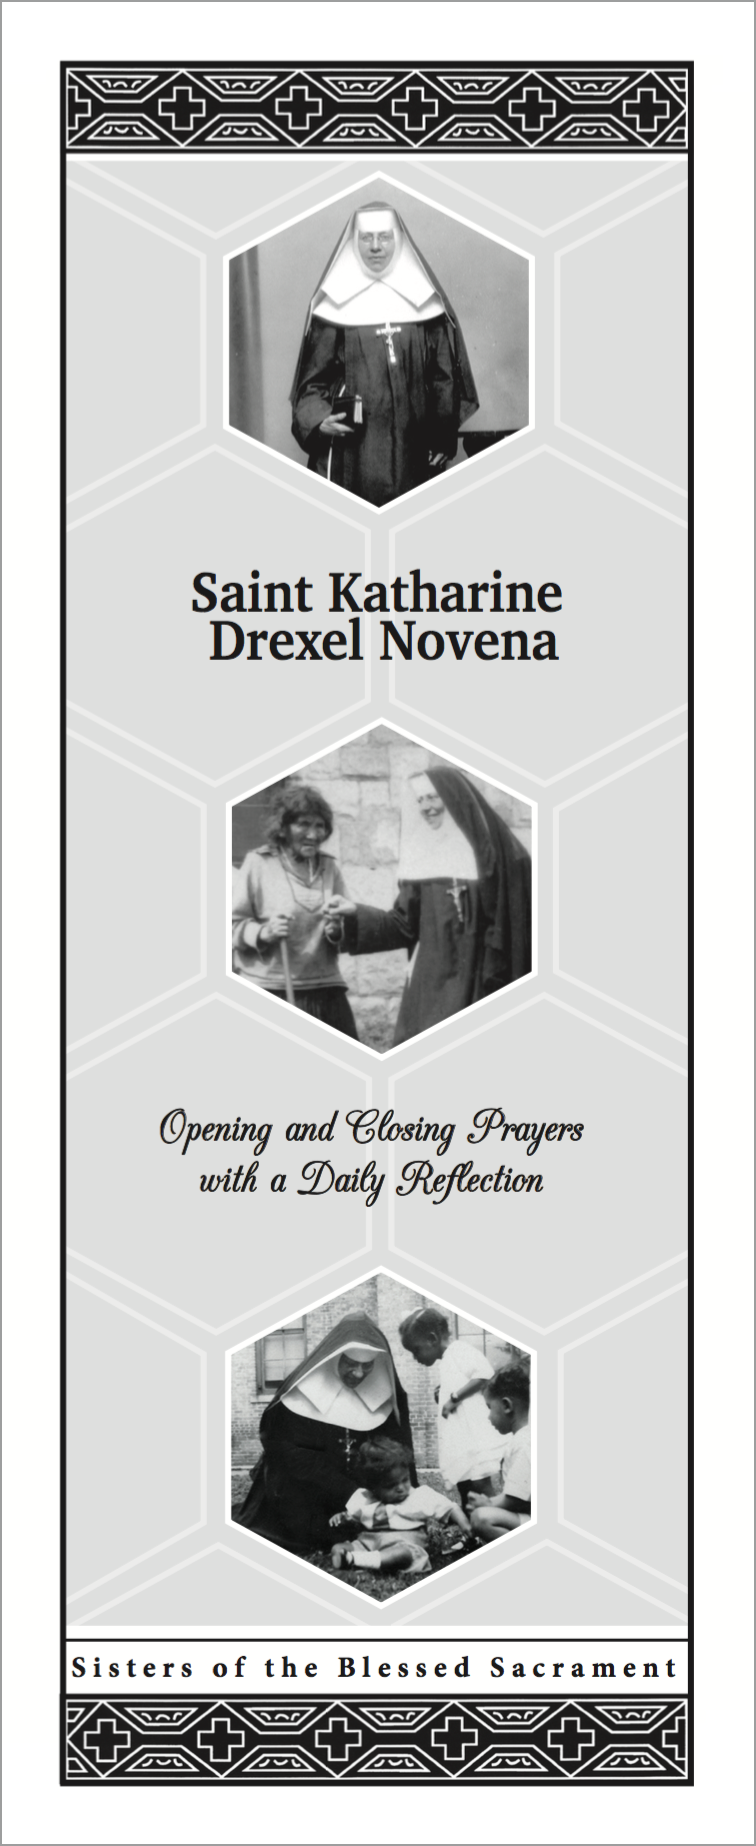 Pray the Saint Katharine Drexel Novena with Us